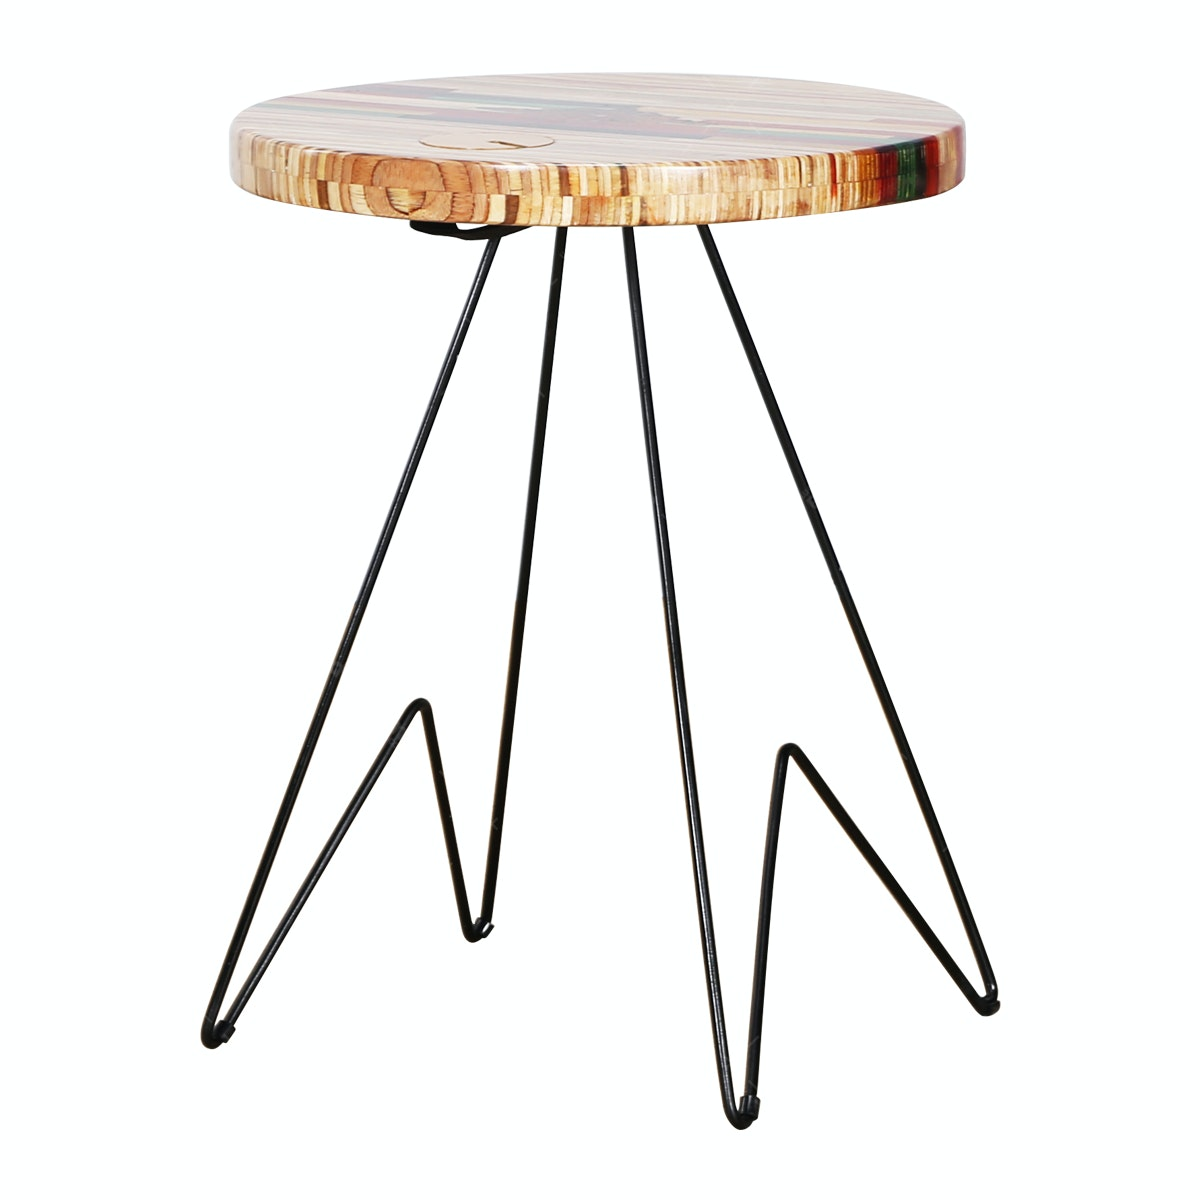 Shape Regina Coffee Table Strip